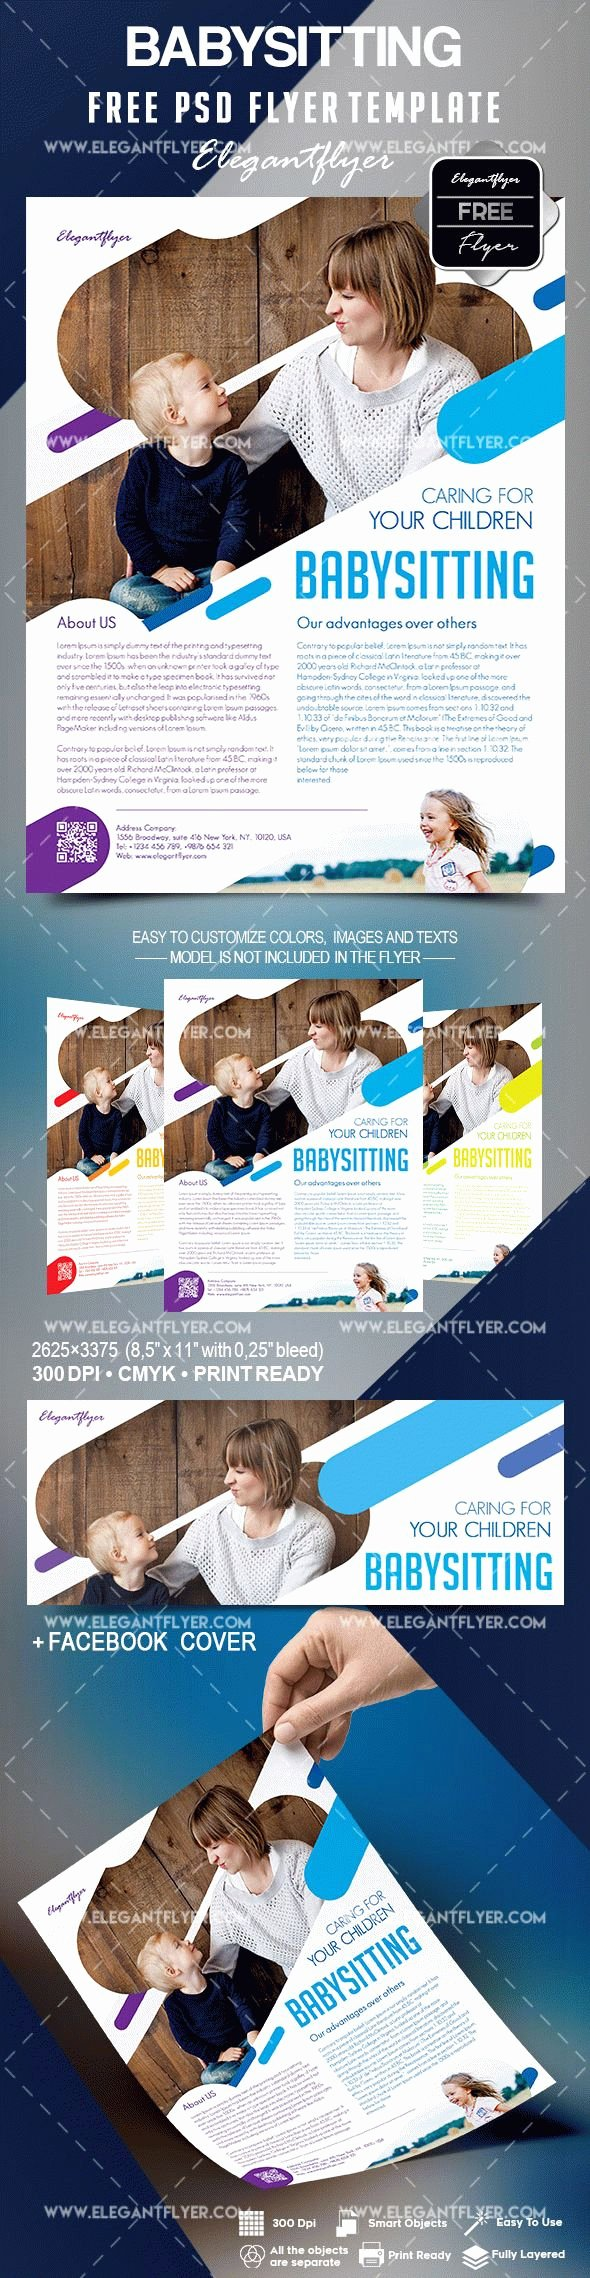 Babysitting Flyer Template Free – by Elegantflyer